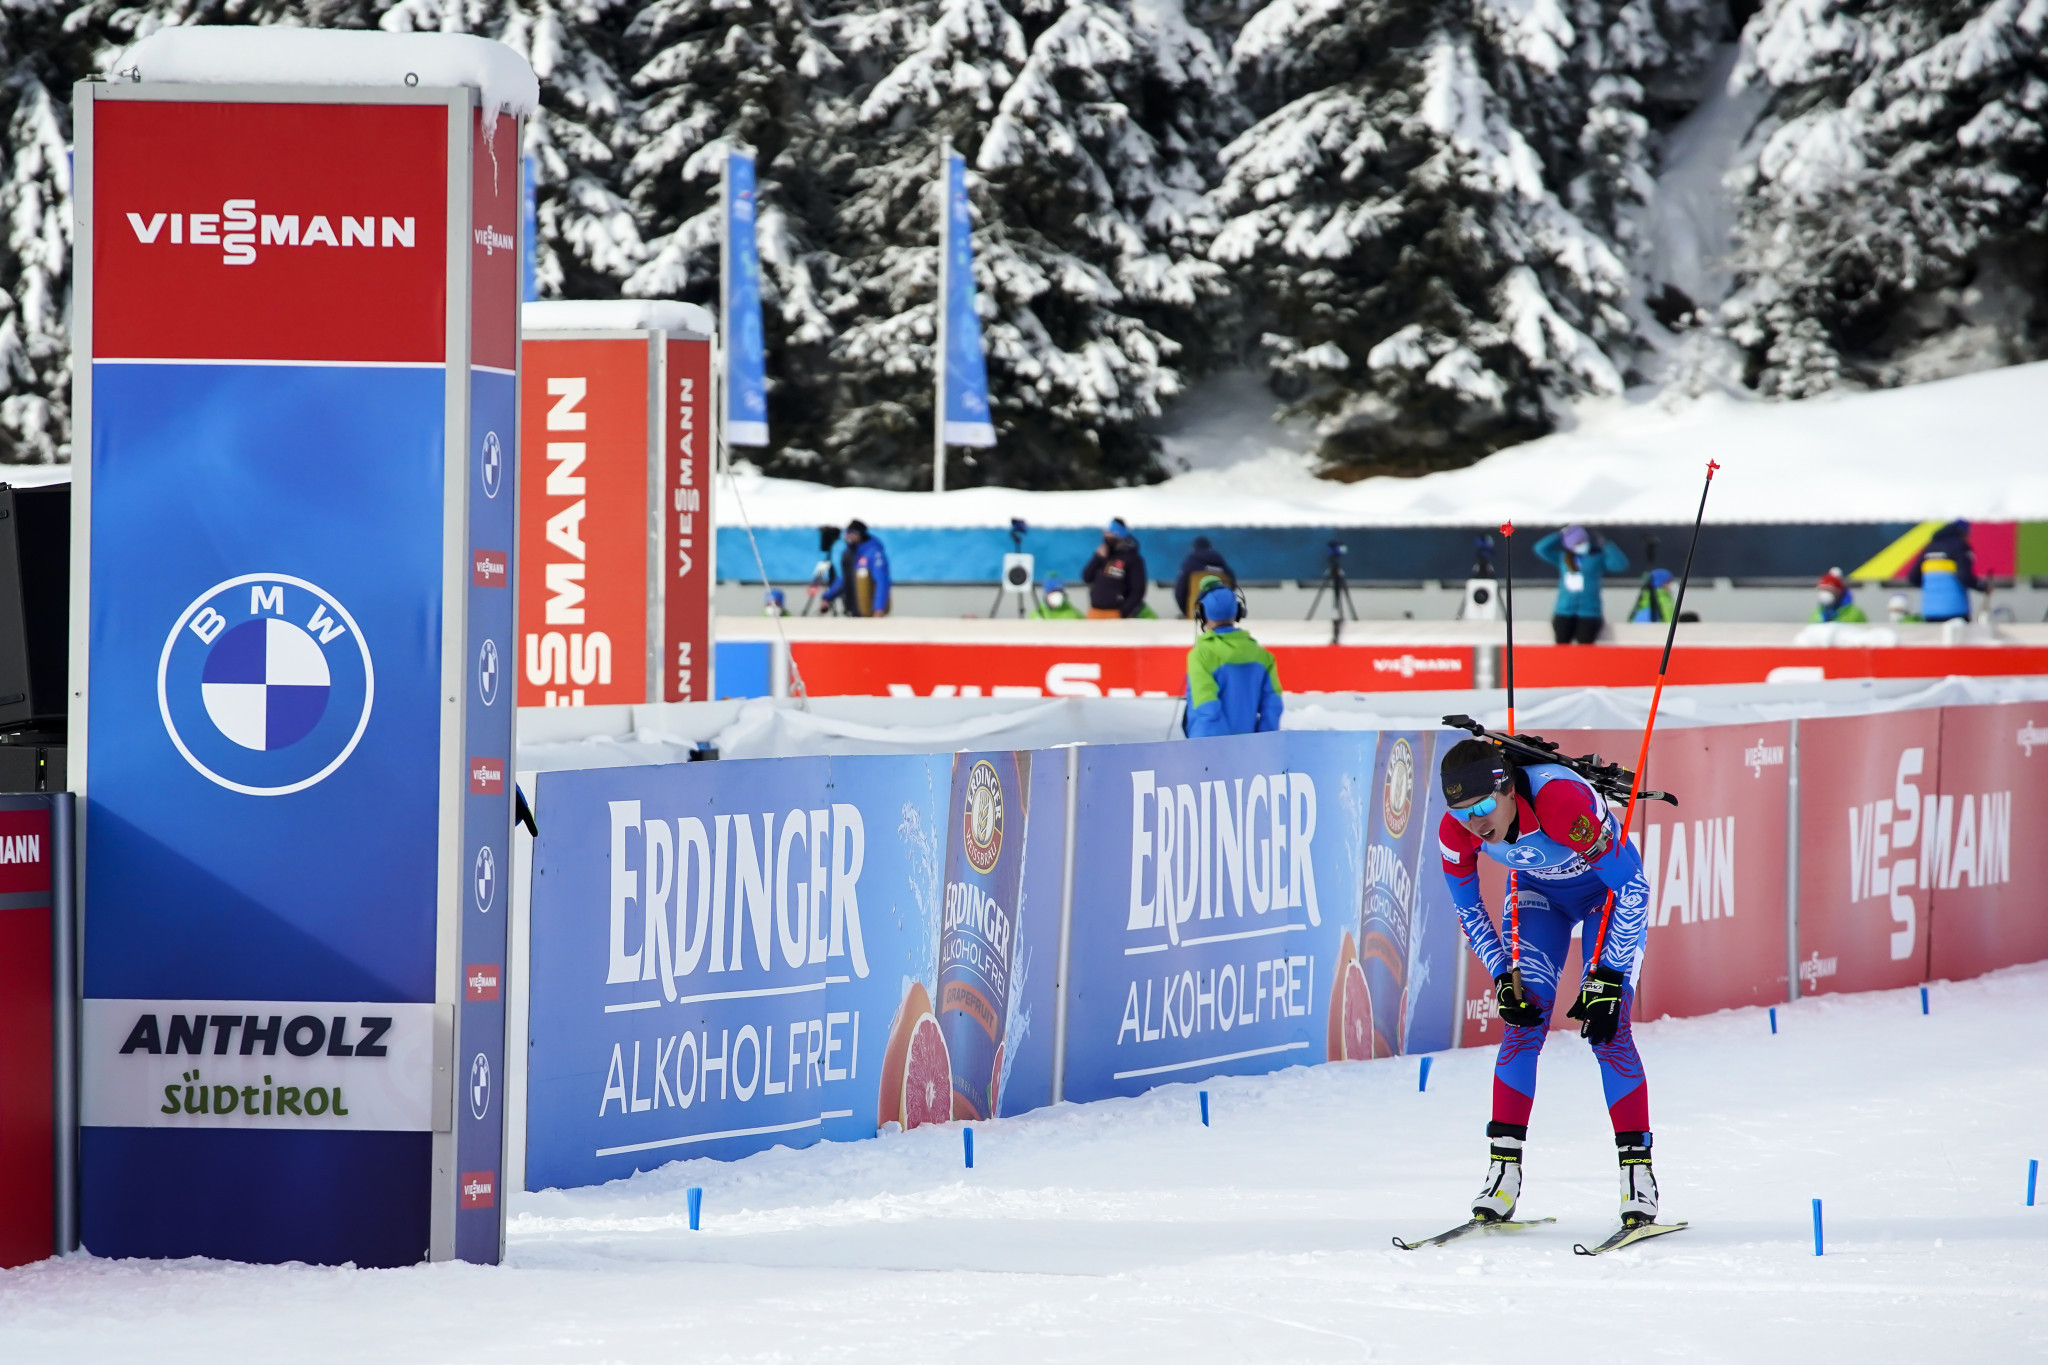 The Biathlon World Championships are ongoing in Pokljuka ©Getty Images